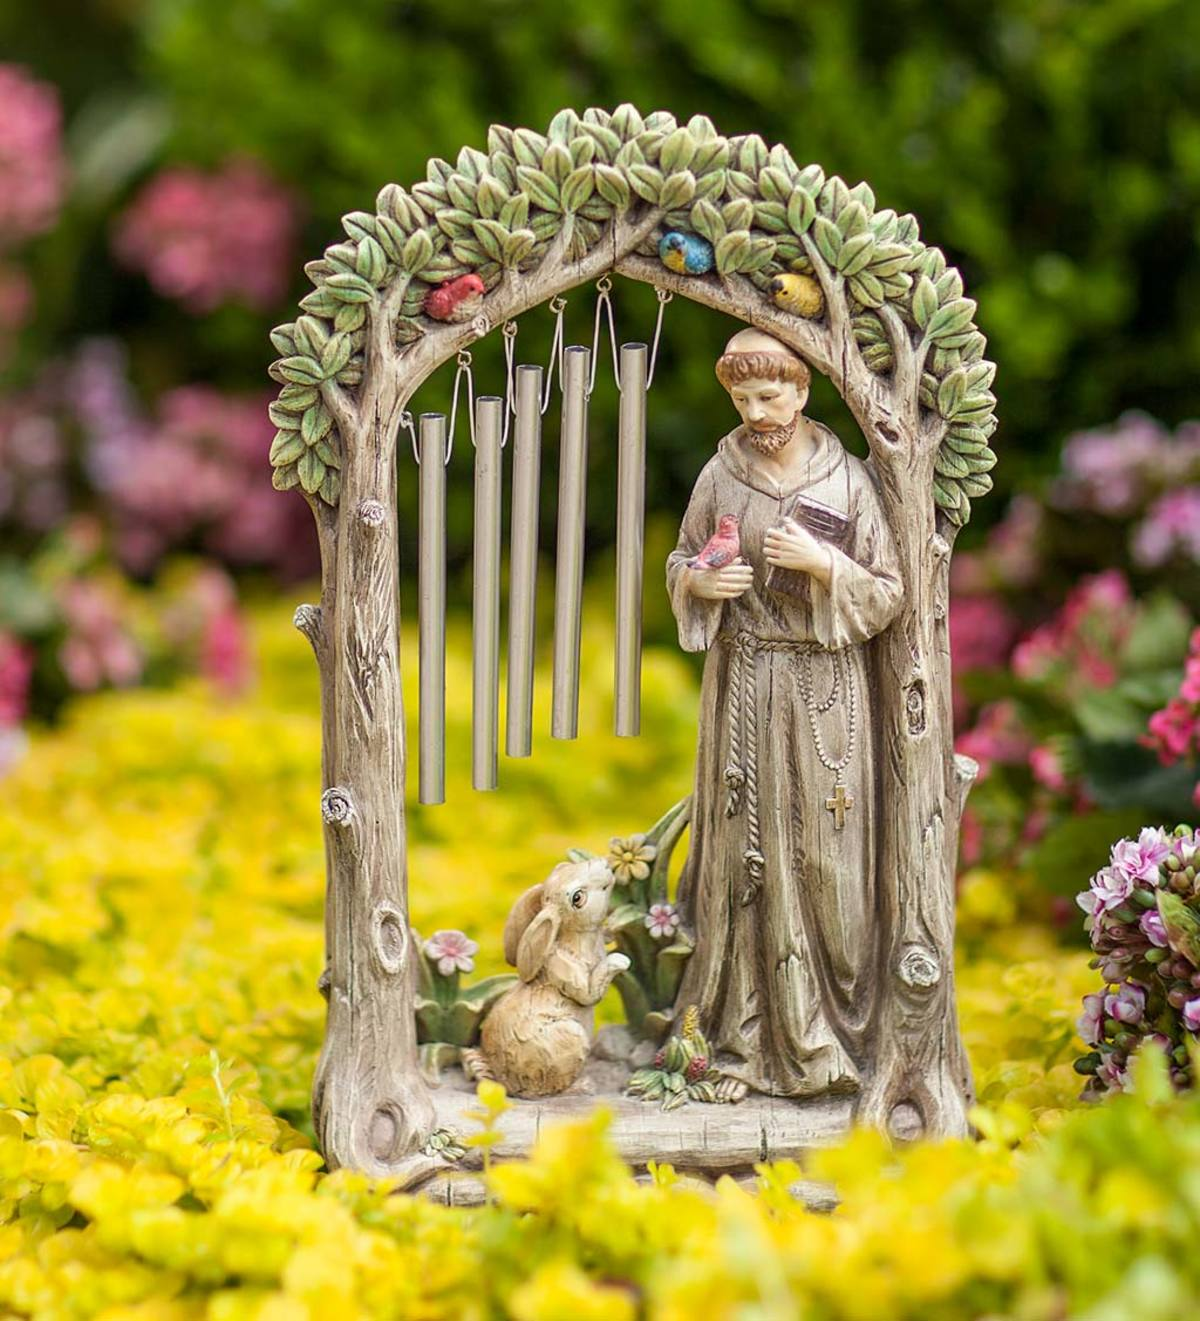 St. Francis in a Garden Figure with Wind Chimes